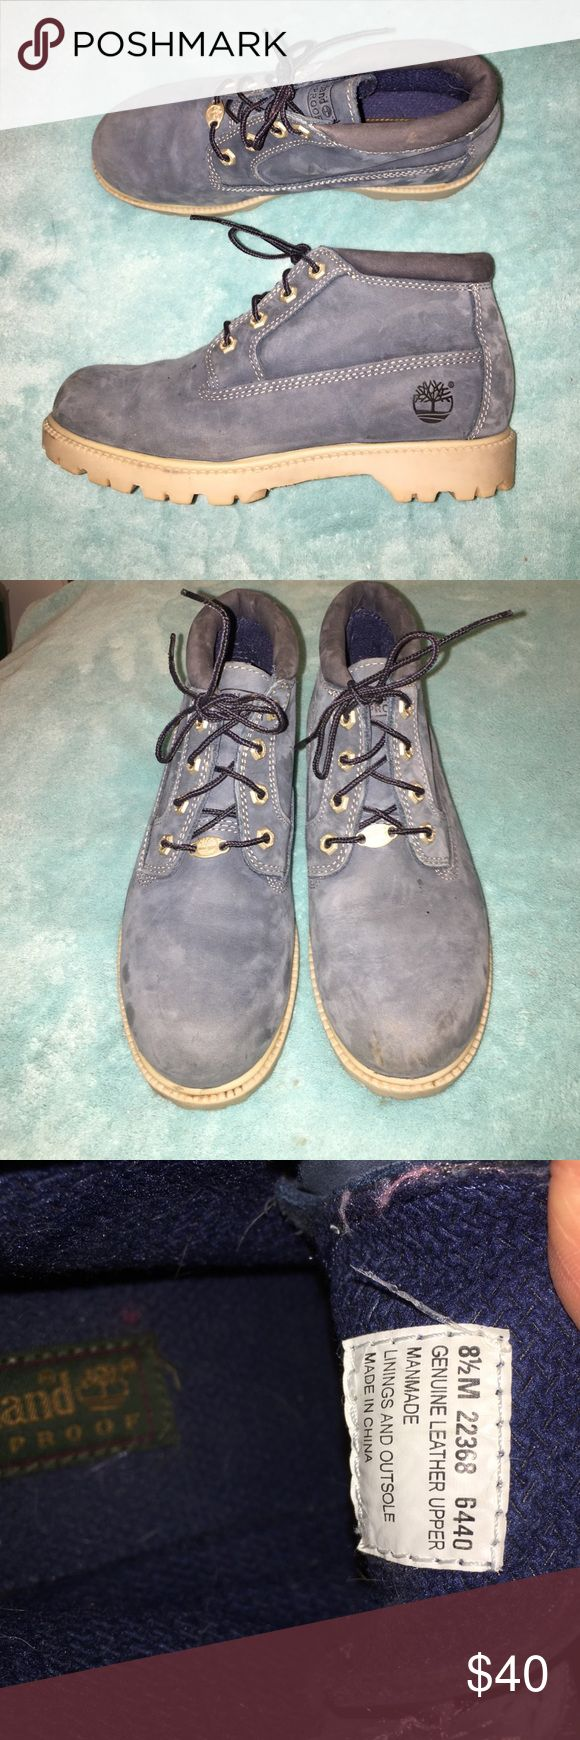 ONE HOUR SALE!!! Women's Blue Timberland Boots! I am selling these vintage Timberland Boots! They are a women's size 8 1/2! They have been warn but are still in great condition! They are a very unique blue color. The soles could use a tiny cleaning but that's all! Sadly I'm selling because I'm moving and could really use the extra money right now. Feel free to ask any questions!!! I try to ship same or next day!!! Timberland Shoes Ankle Boots & Booties